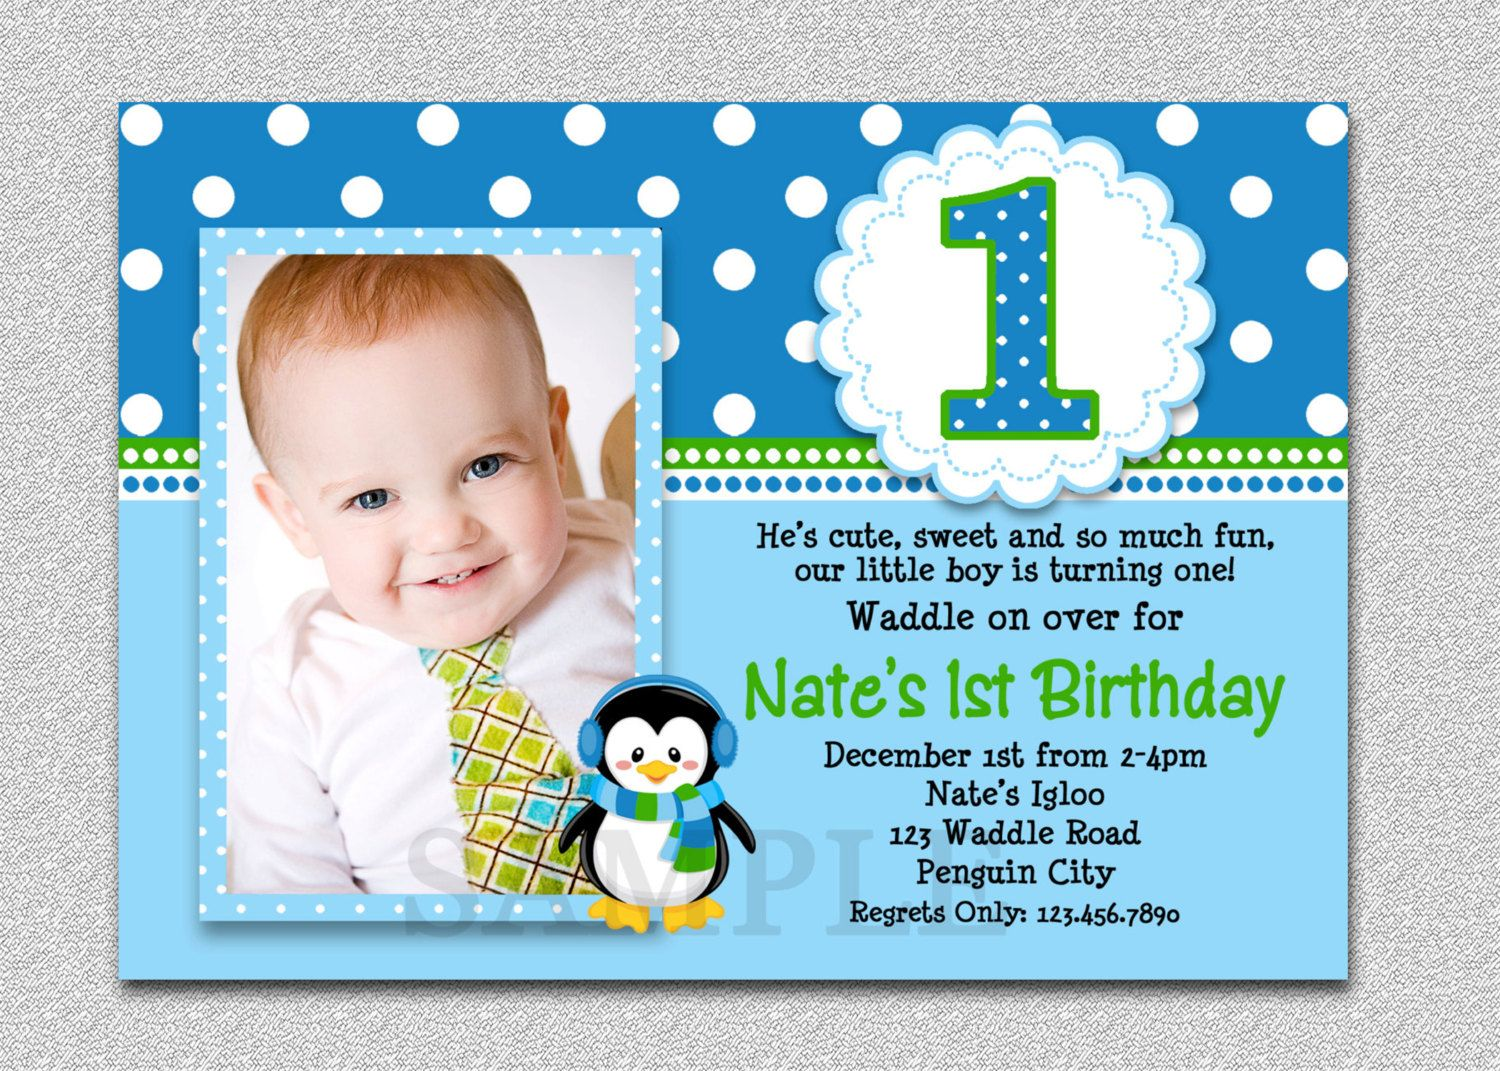 1st birthday greeting cards for baby boy ; c7a8dcca3c532c77d0ff13234f5479a7